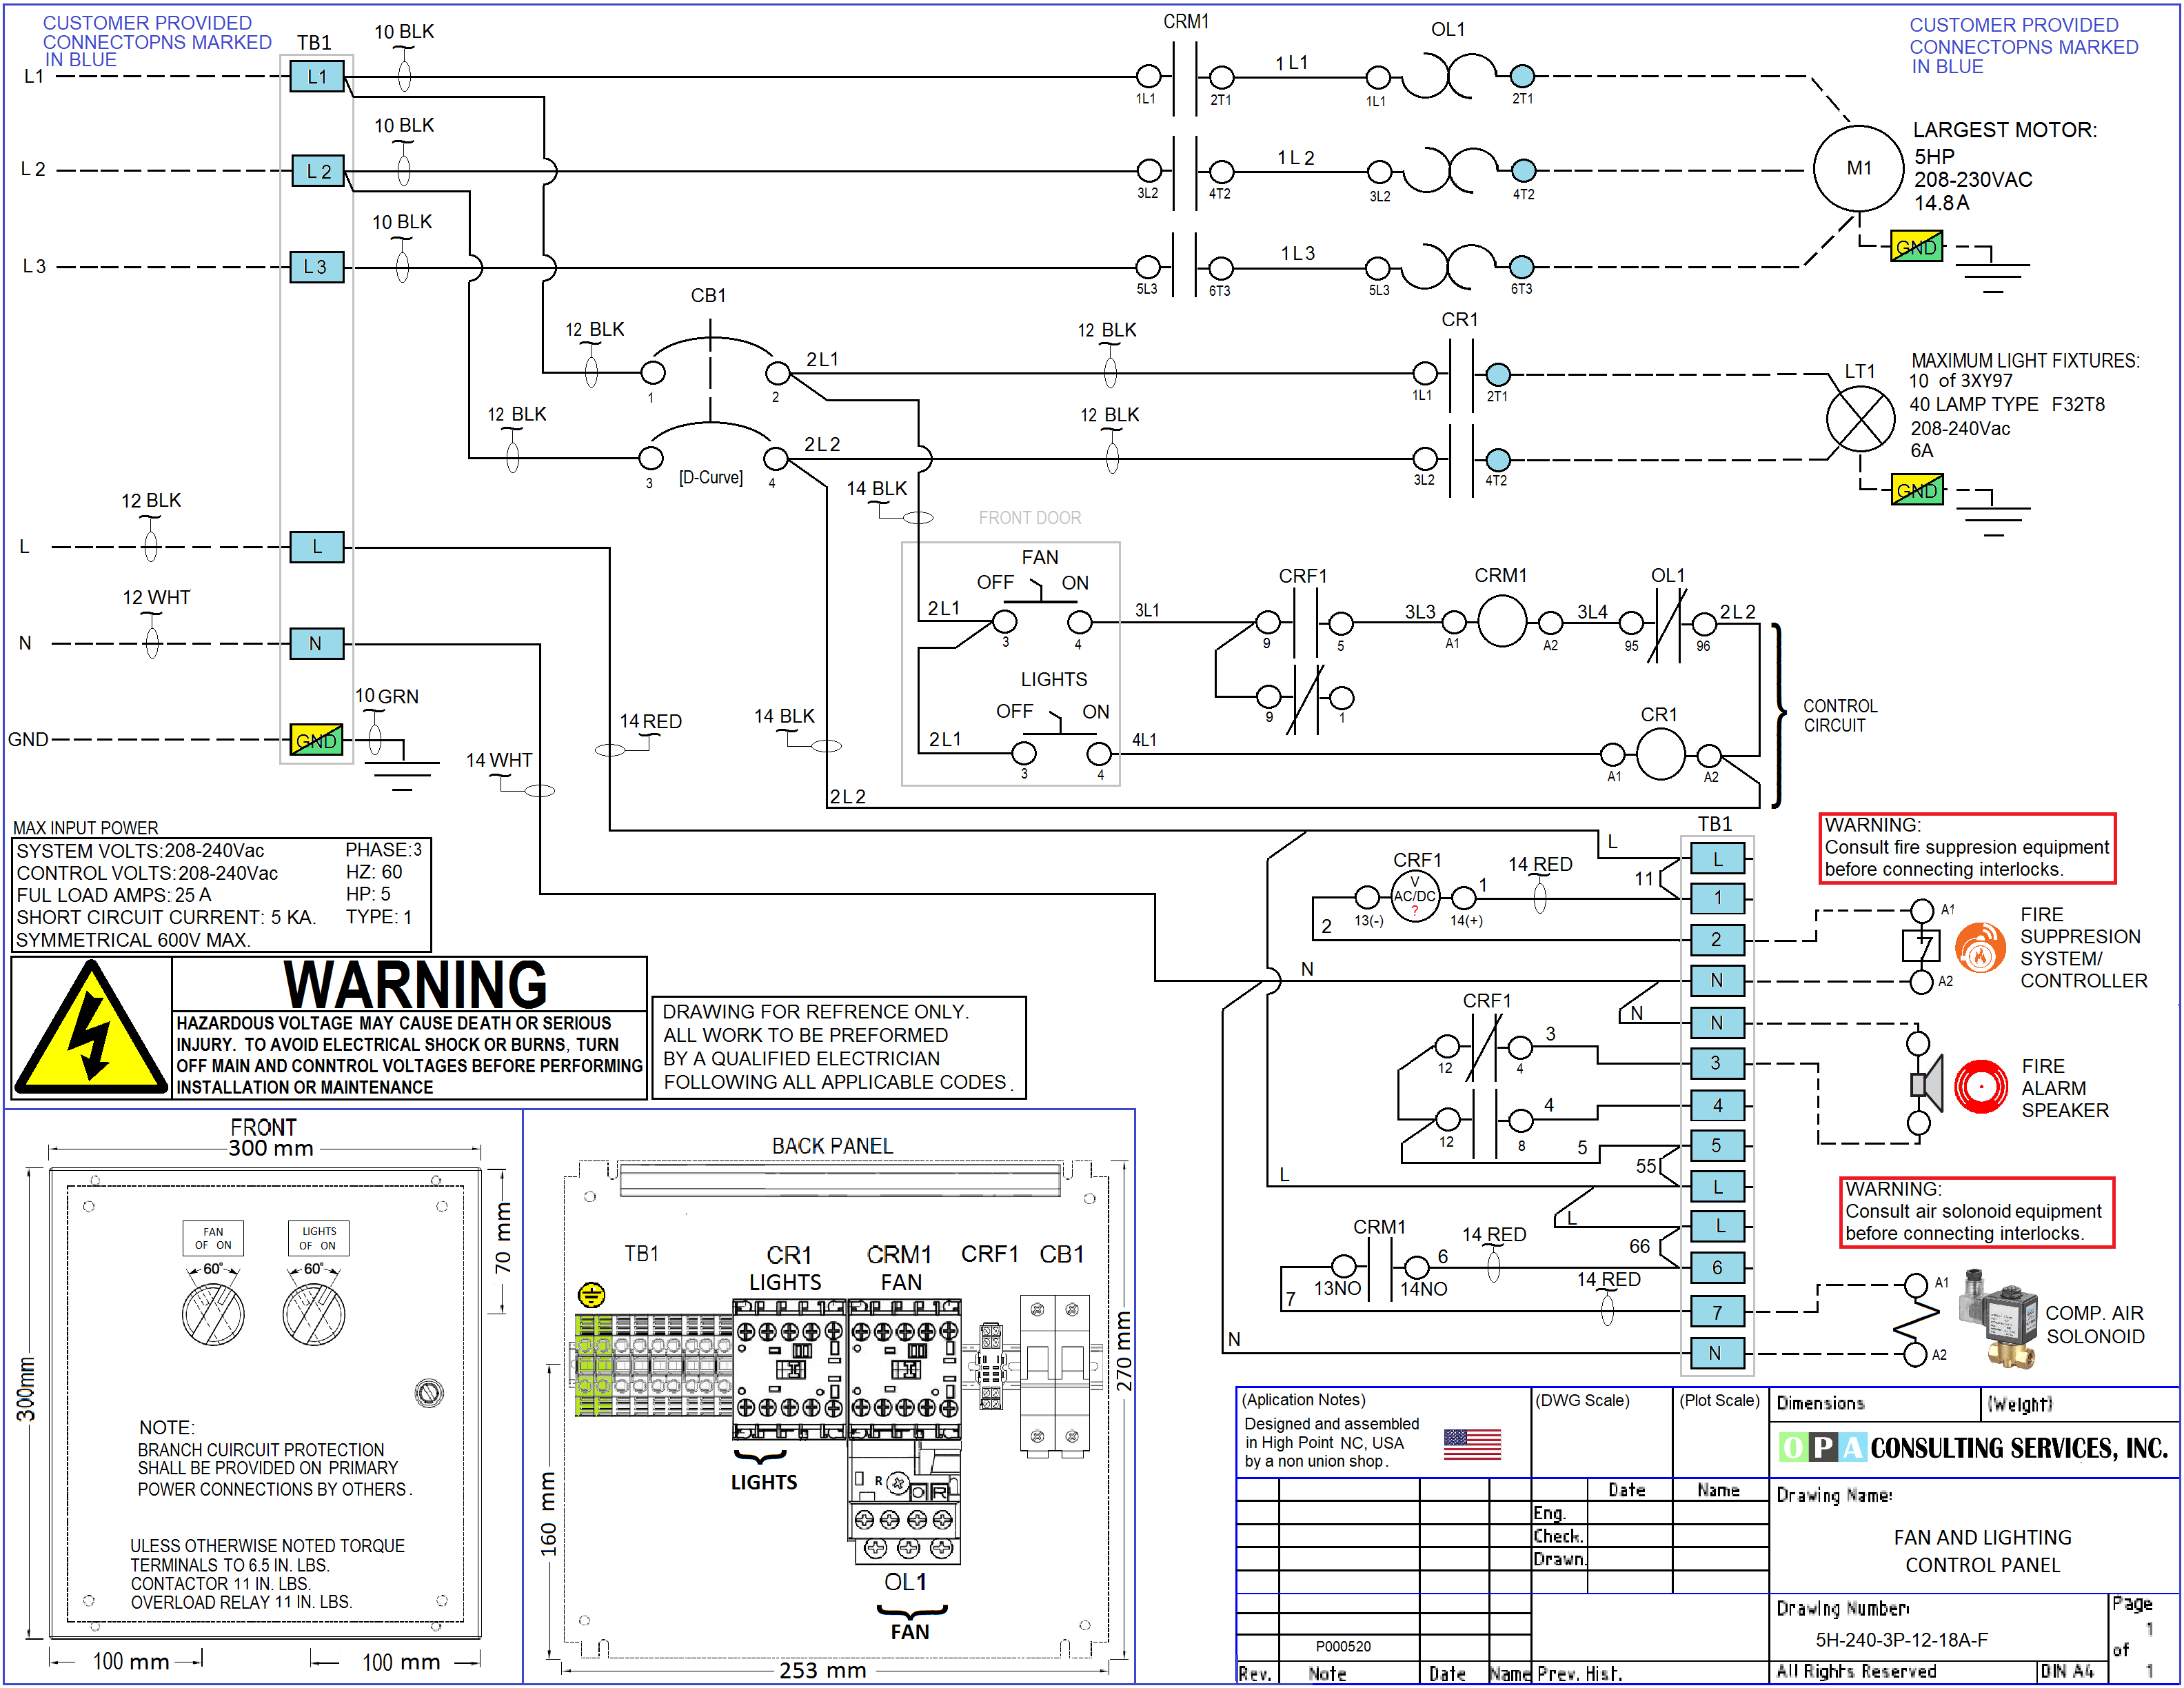 Kitchen Spotlight Wiring Diagram Auto Electrical Furnace Heil Nugk050mf01 Spray Booth Diagrams 27 Images